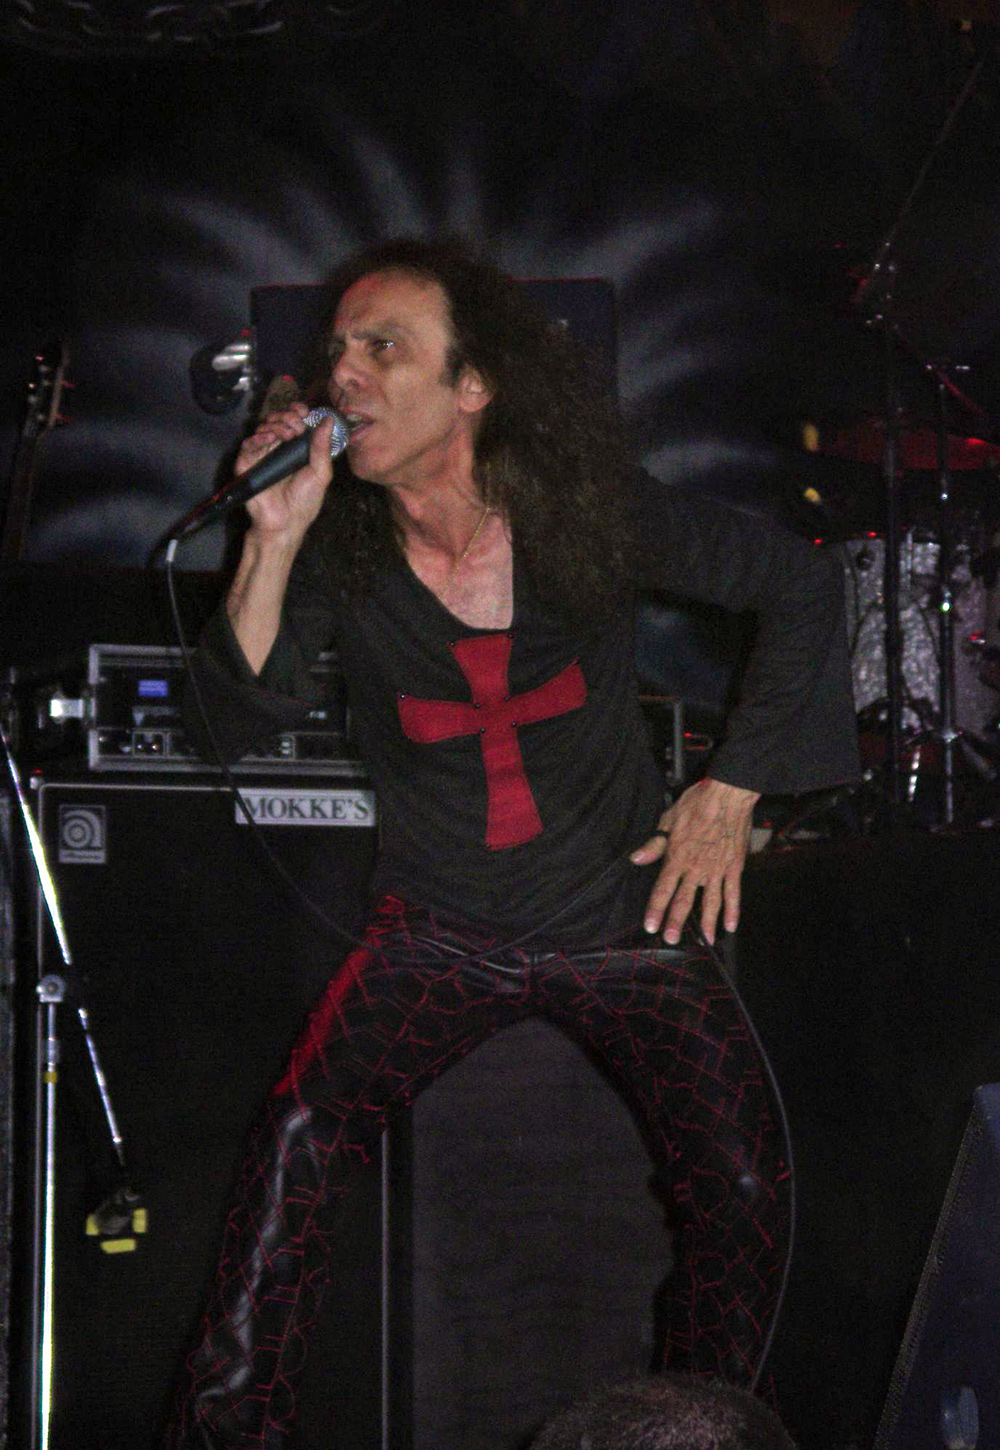 Ronnie James DIo at the IronFest 2005